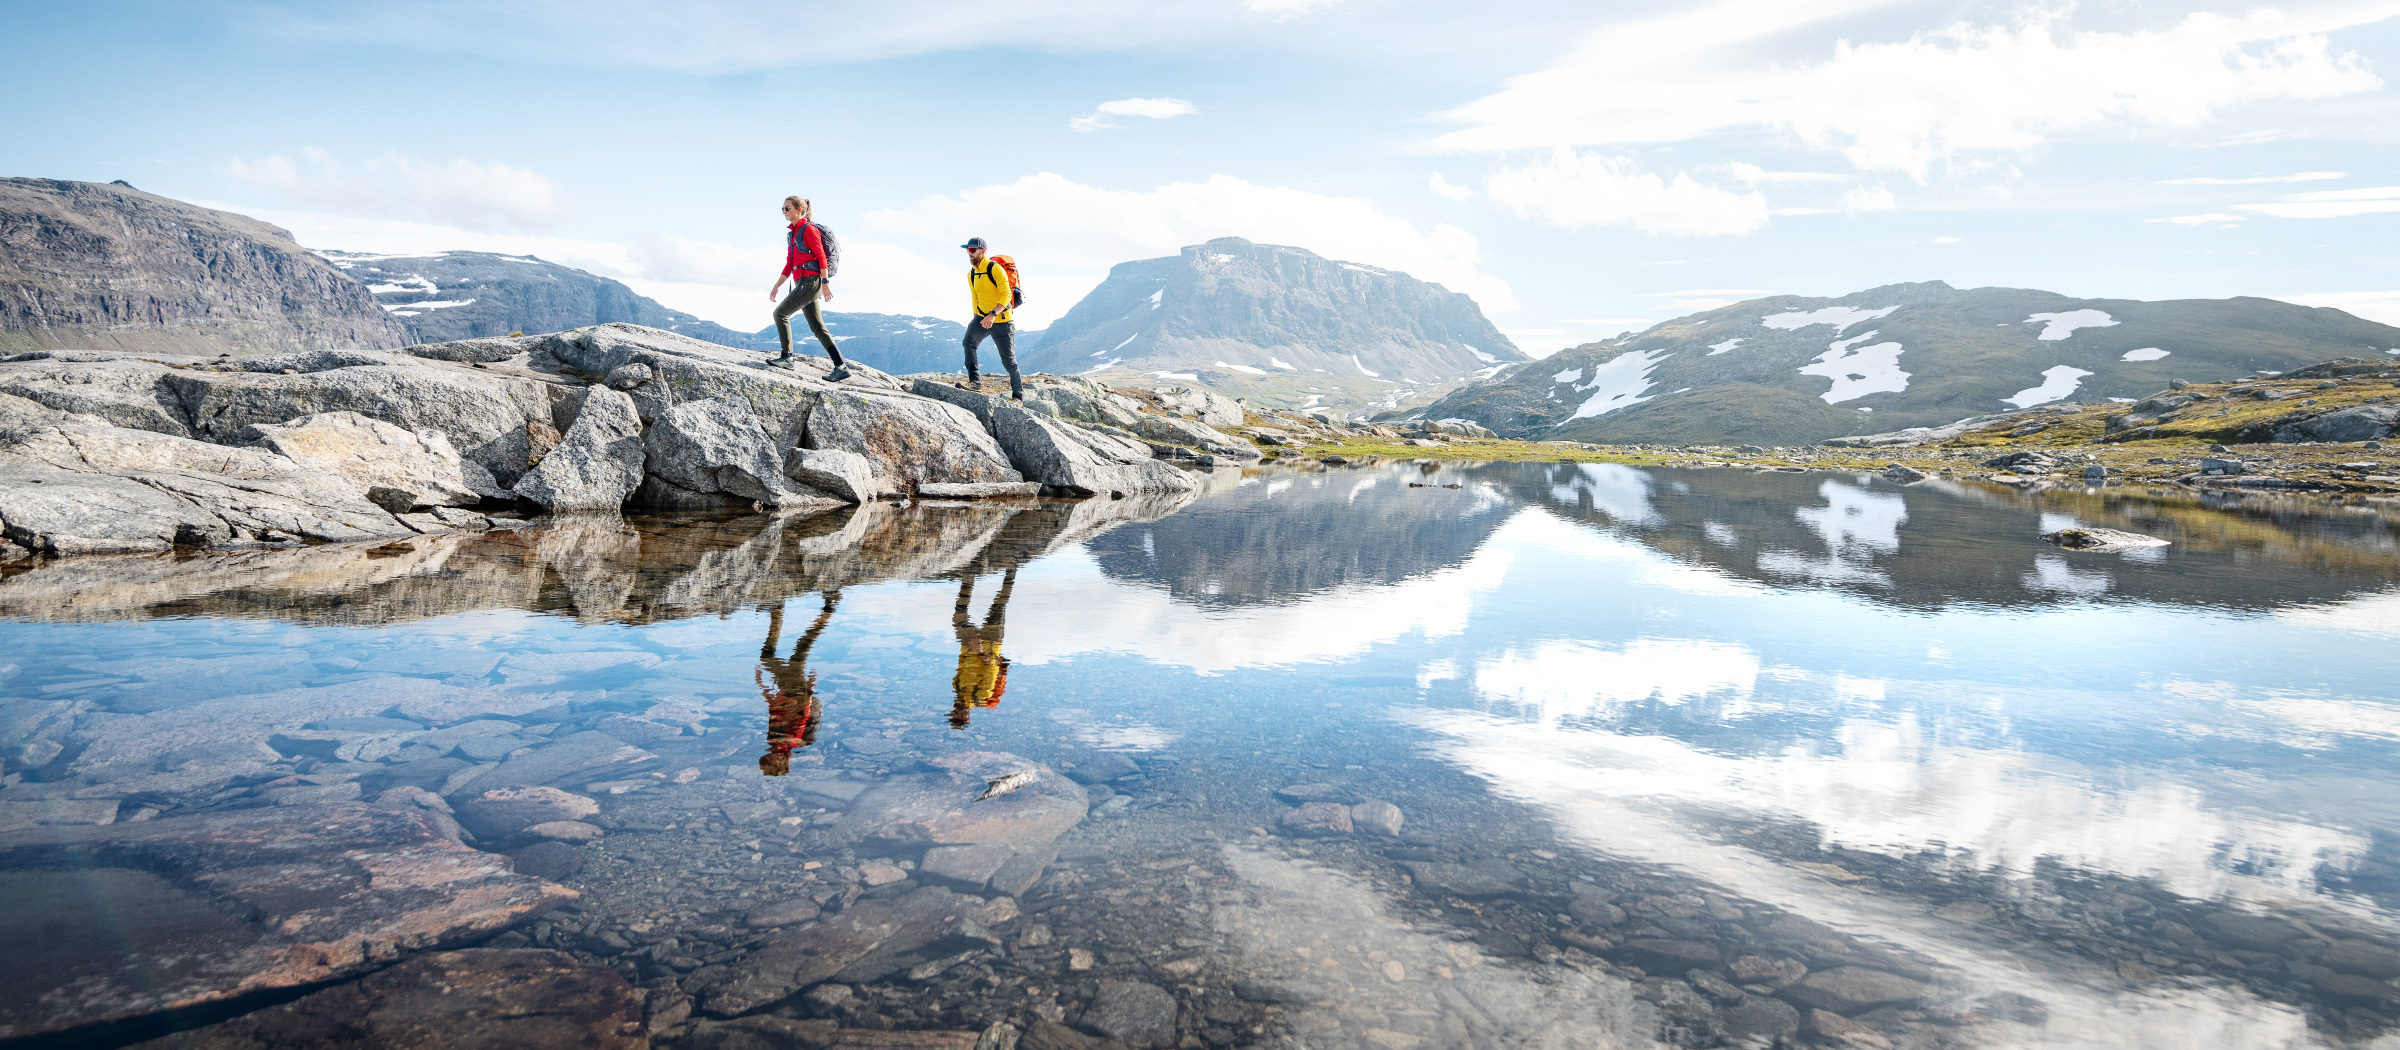 Two hikers are exploring a valley in Björkliden, surrounded by mountains. Wearing the Stellar EQ Ultralight Shell jackets.